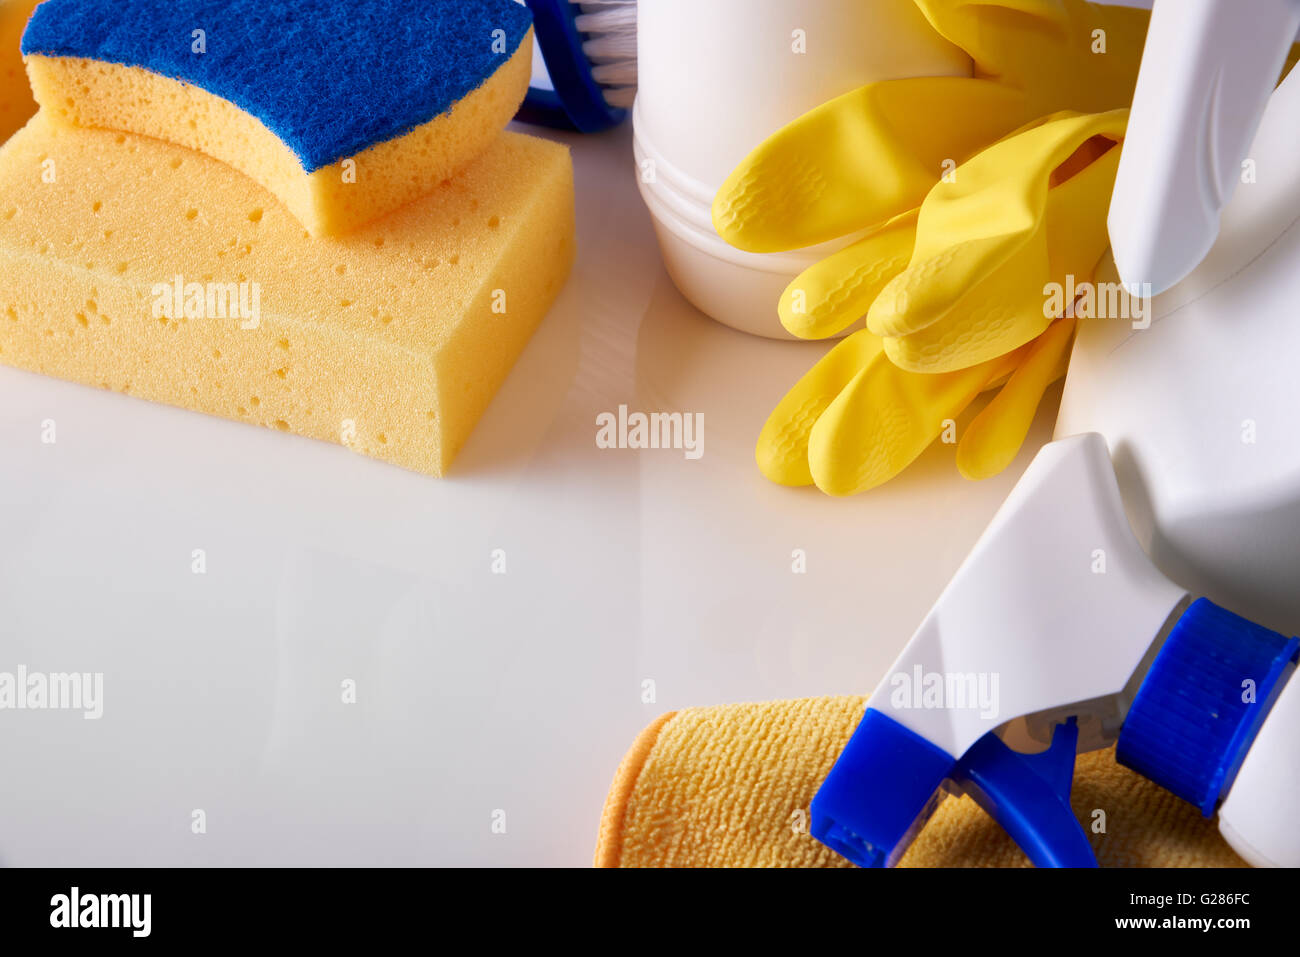 Professional cleaning equipment on white table. Cleaning tools company concept. Elevated view. Horizontal composition. - Stock Image